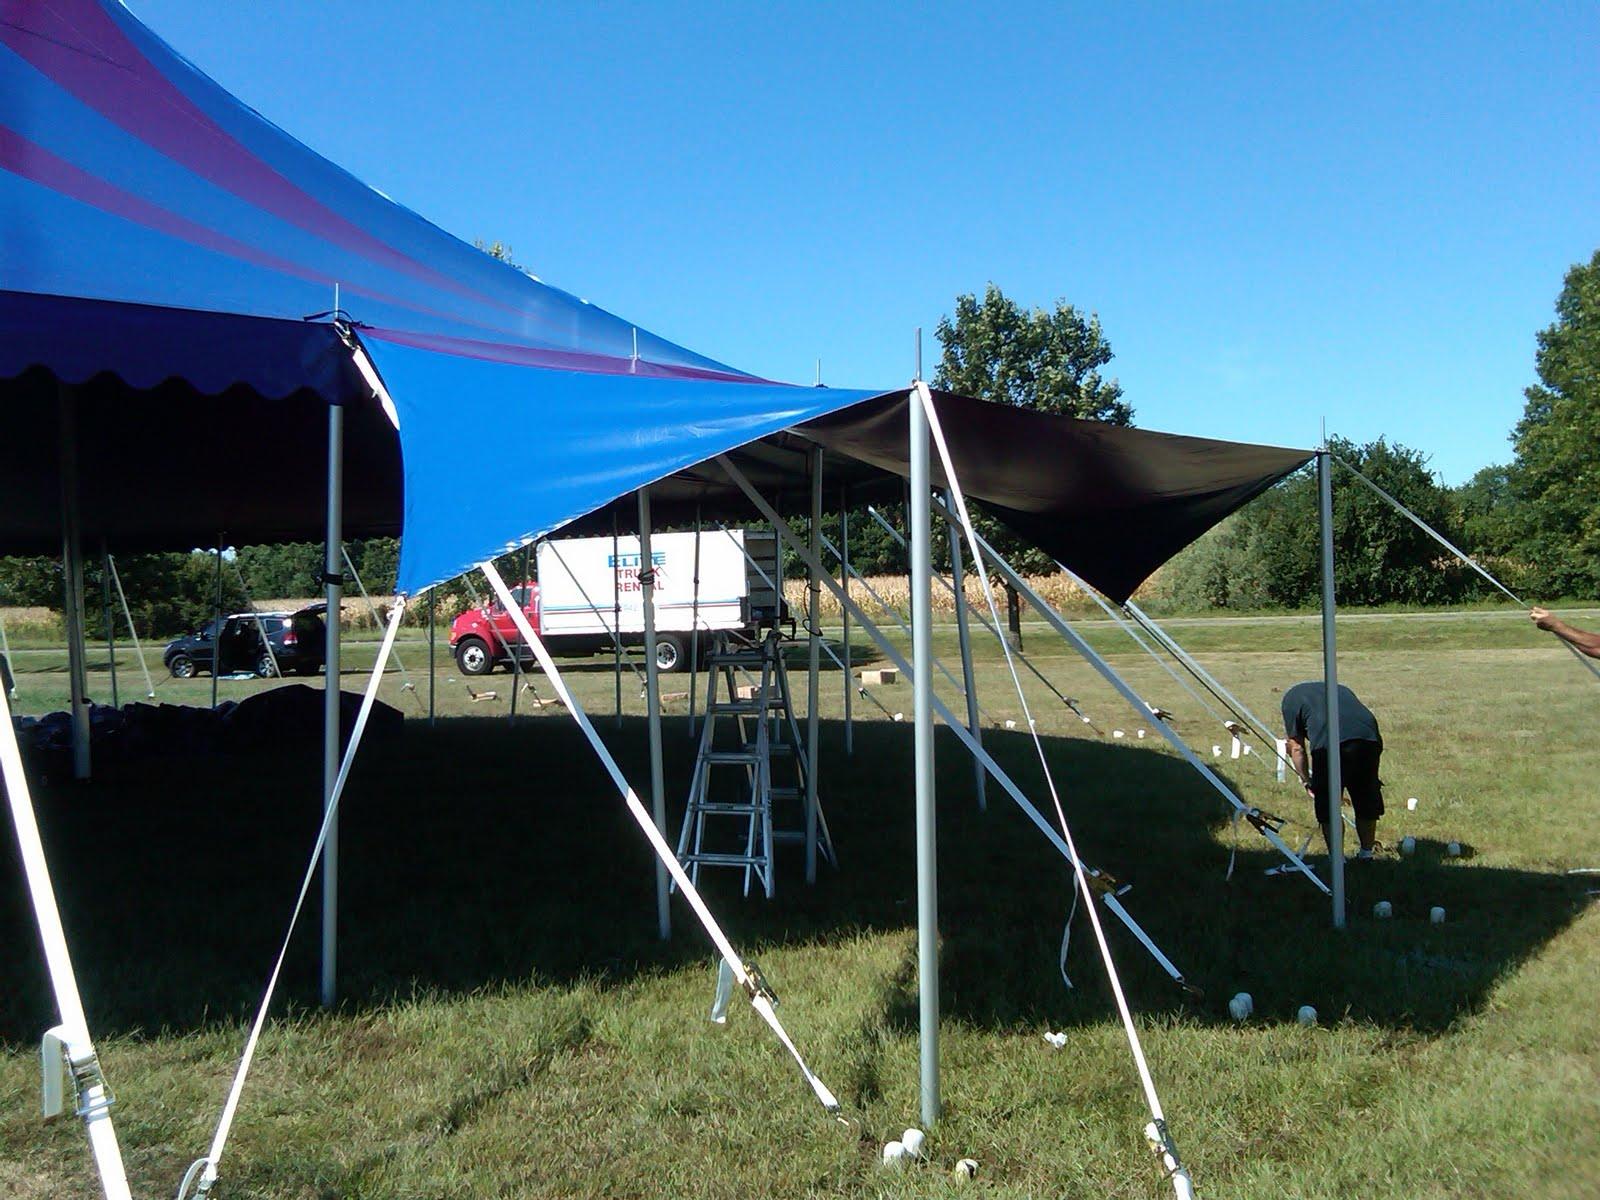 Pictures of the Midnight Circus Tent installed for the first show in Chicago IL. Tent was perfect for the opening performance. Custom tension entrances ... & Circus Tent for Midnight Circus | Armbruster Tent Maker